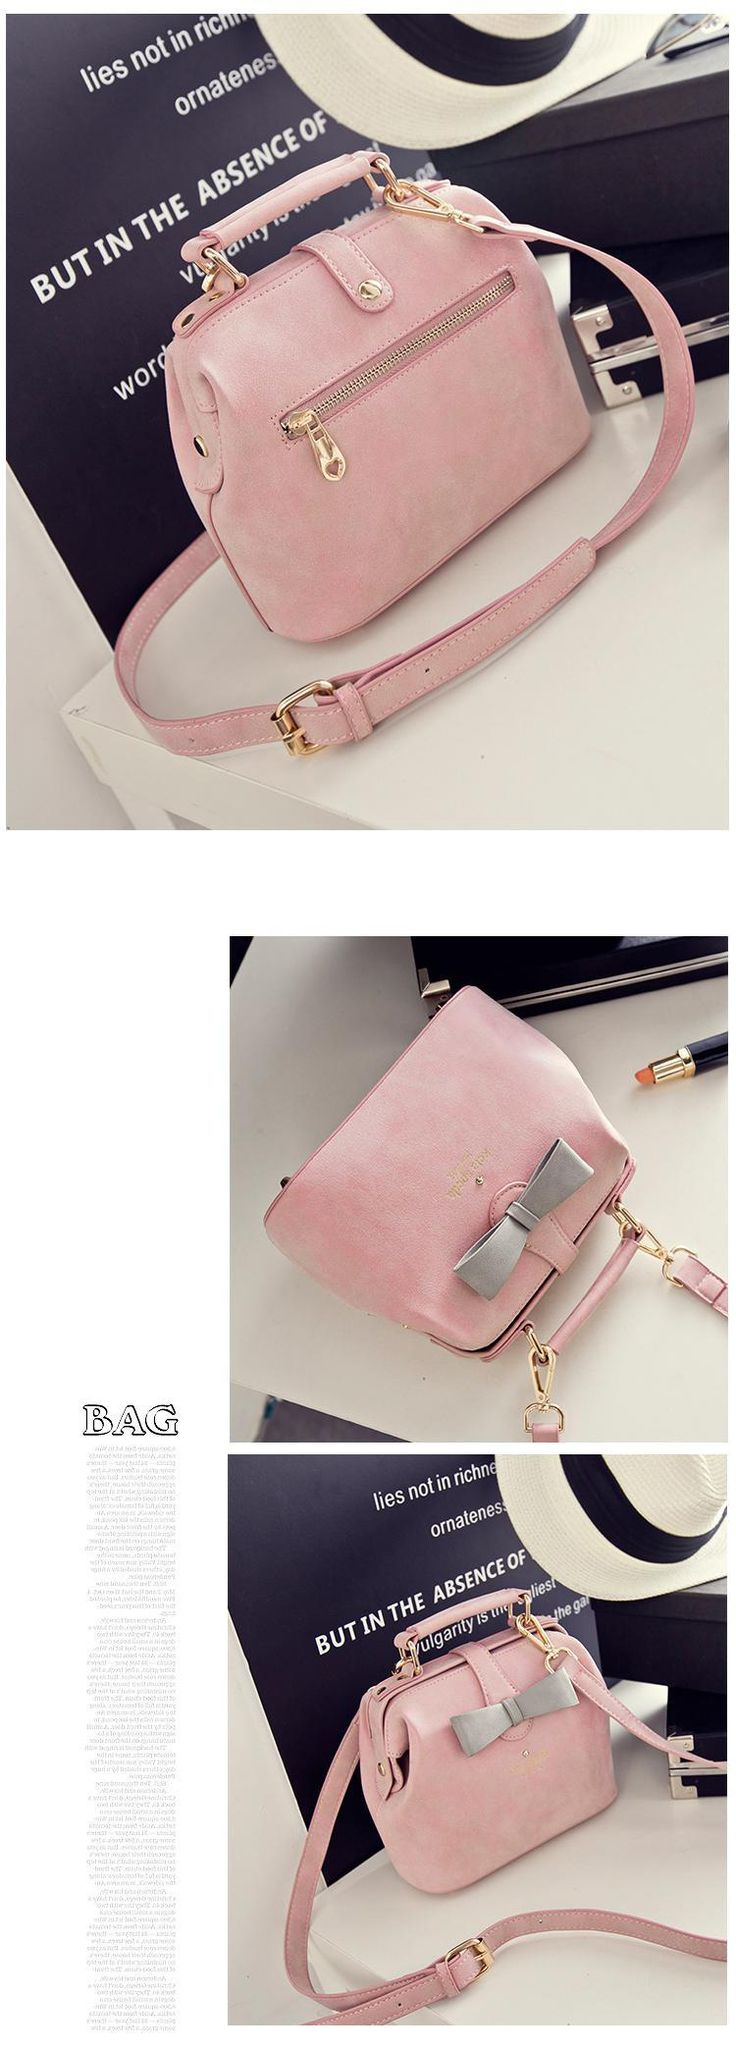 2016 New Arrival Lady Vintage Bag Handbag PU Leather Pink Cute Small Messenger Bag Female Shoulder Bag with Bow Drop Shipping-inTop-Handle Bags from Luggage & Bags on Aliexpress.com | Alibaba Group